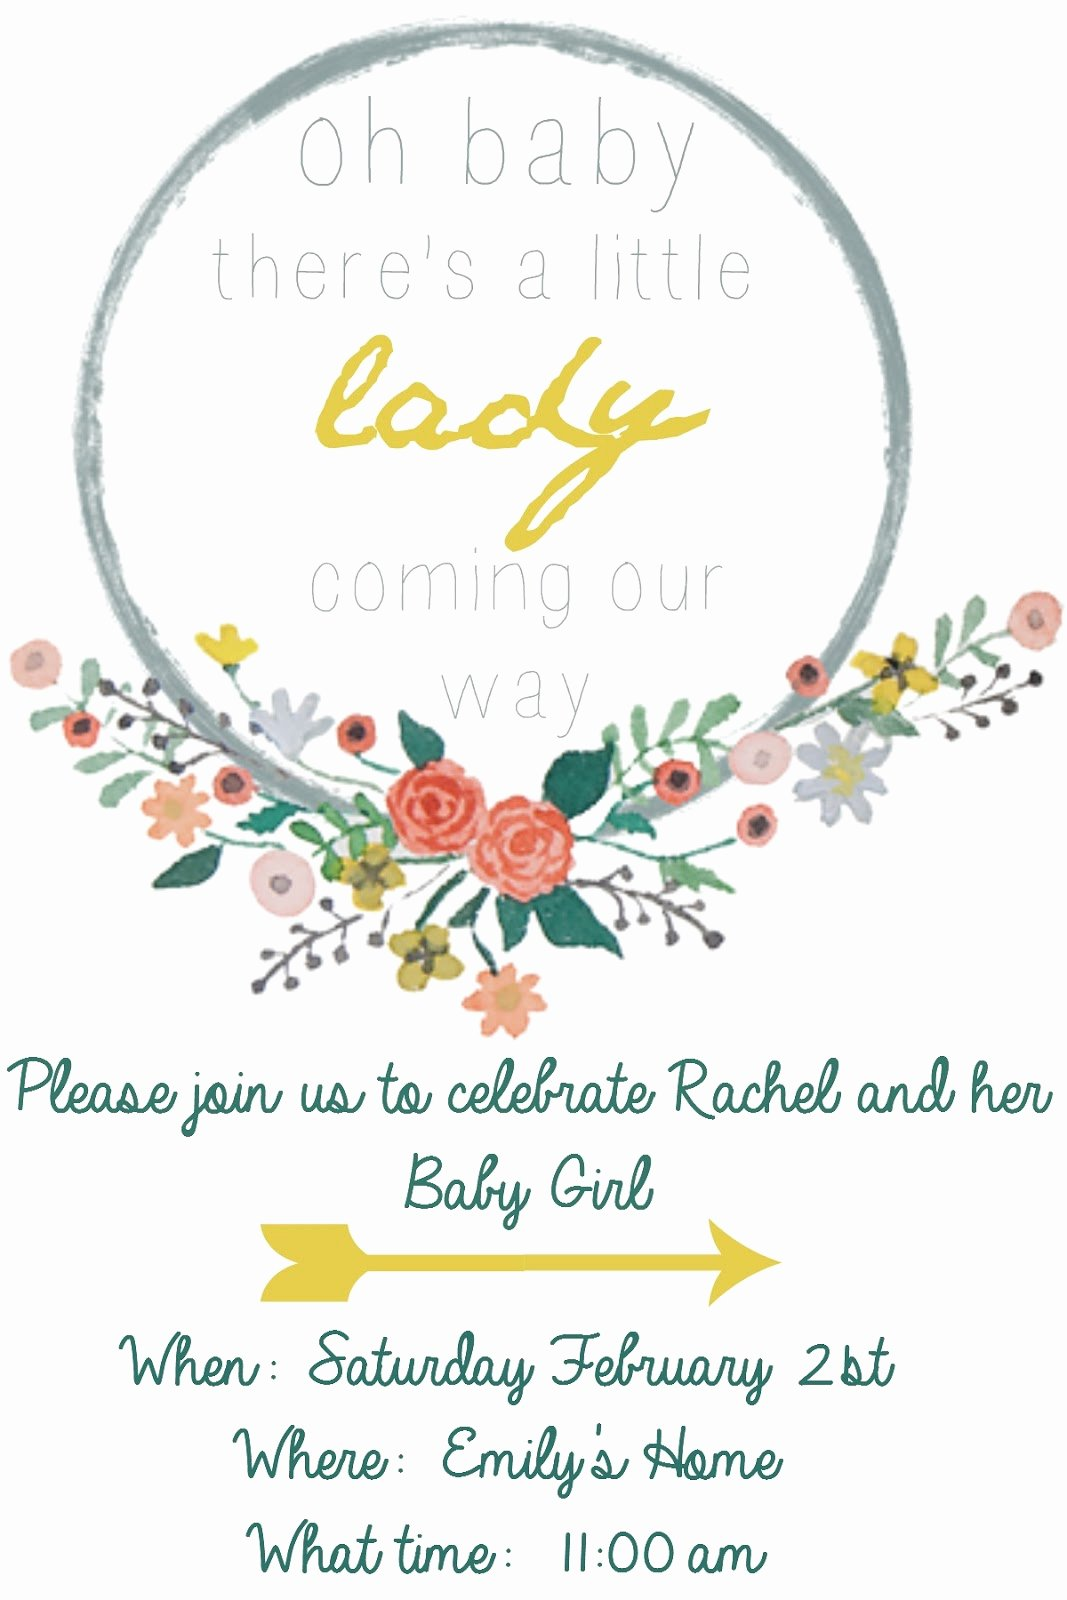 Free Baby Invitation Template Unique Emmy In Her Element Free Baby Shower Invitation Template